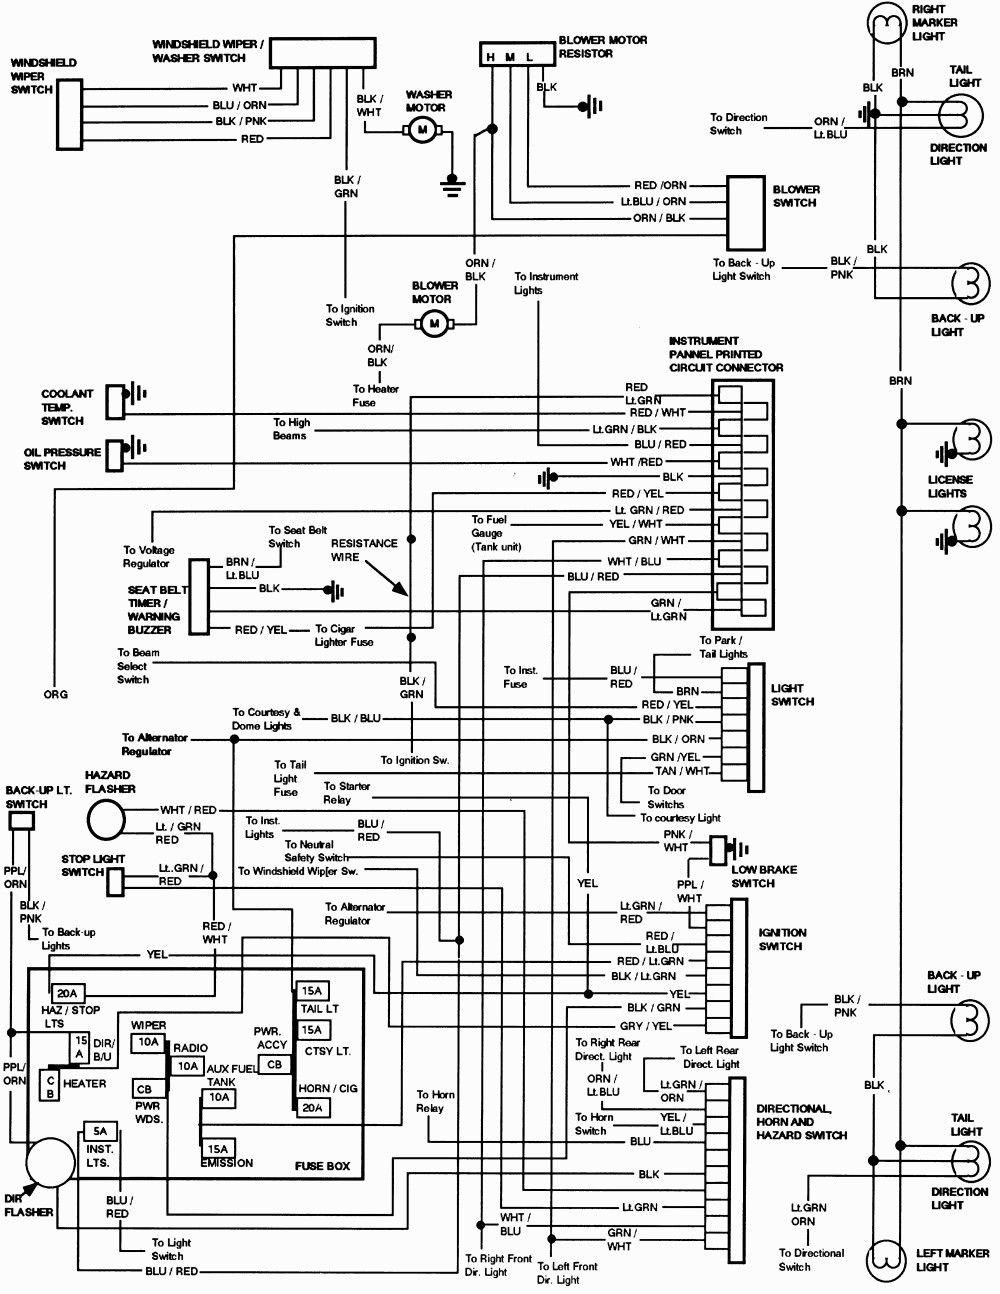 2005 F350 Ac Diagram | Wiring Diagram F Ac Wiring Schematic on